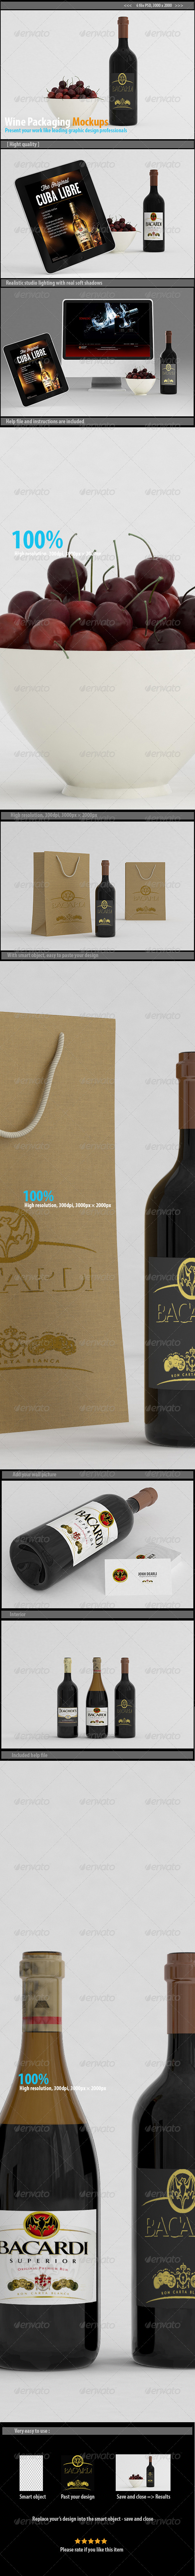 GraphicRiver Wine Packaging Mockups 8098183